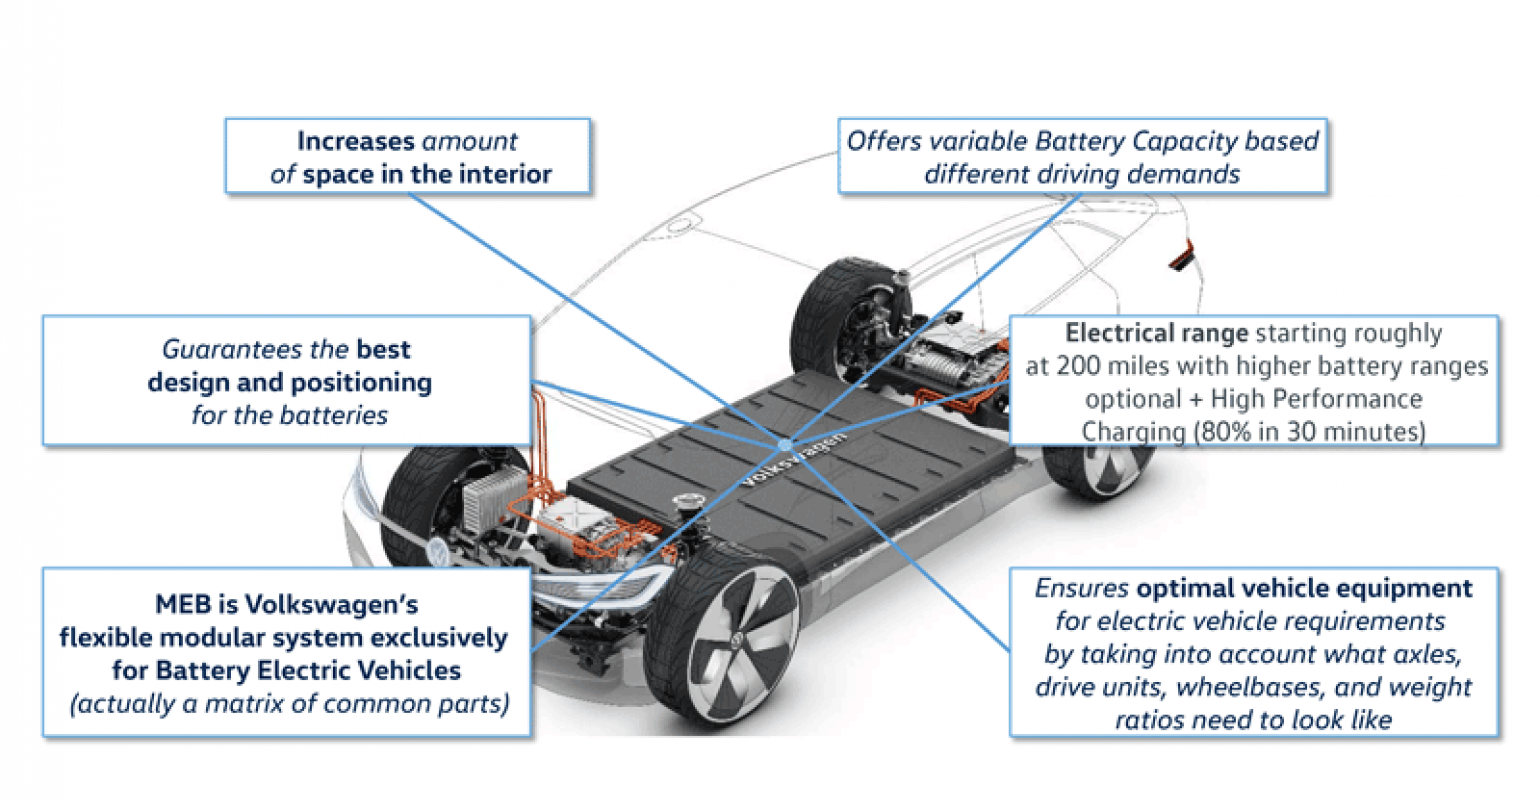 All Electric Meb Platform To Drive New Firsts At Vw